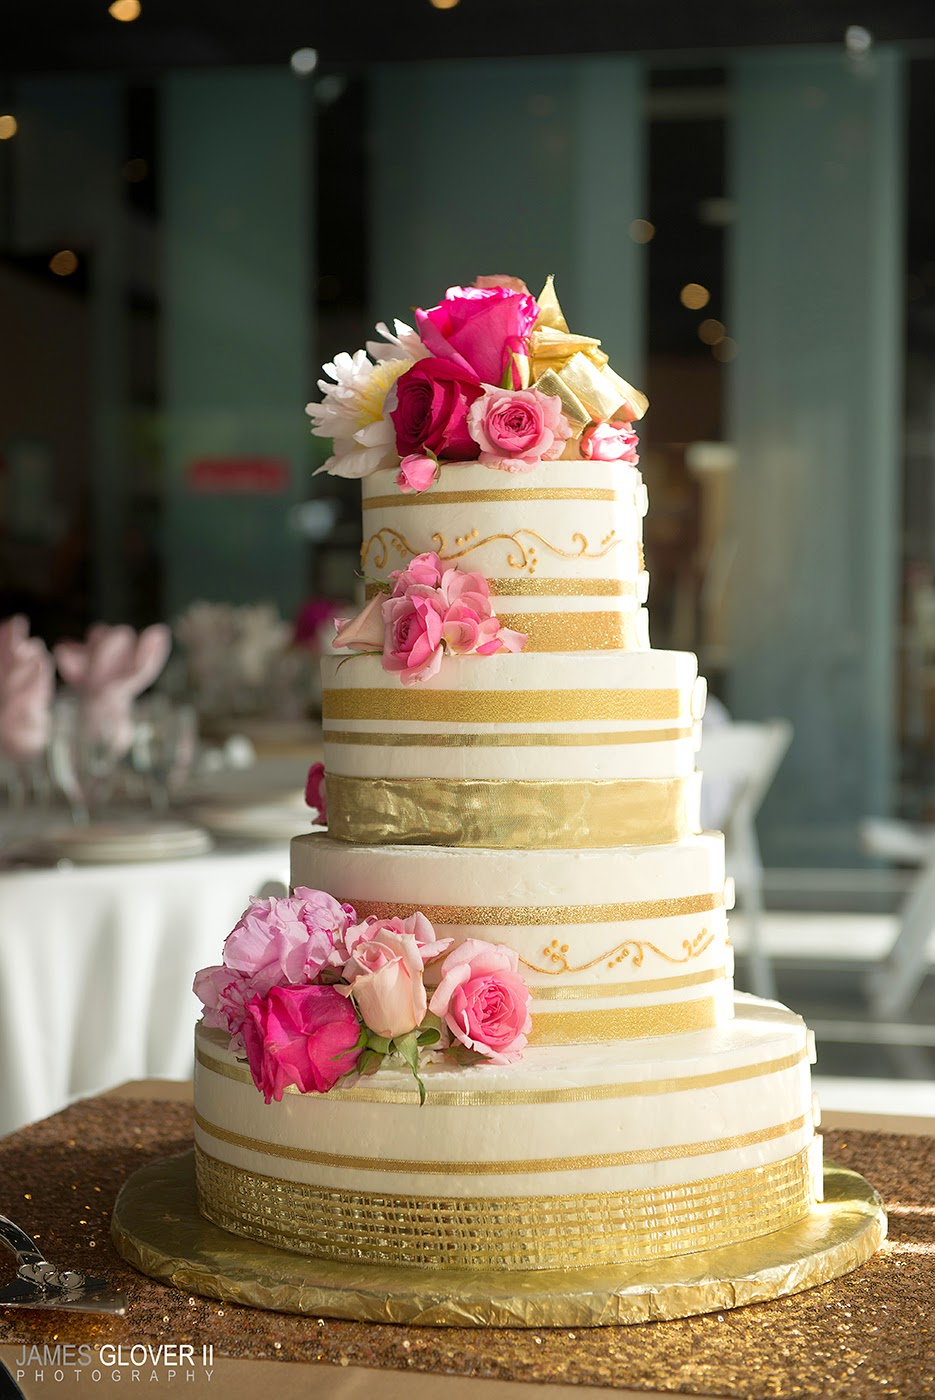 Gold and pink wedding cake by the Eldorado Bakery // James Glover Photography // Nevada Museum of Art // Take the Cake Event Planning